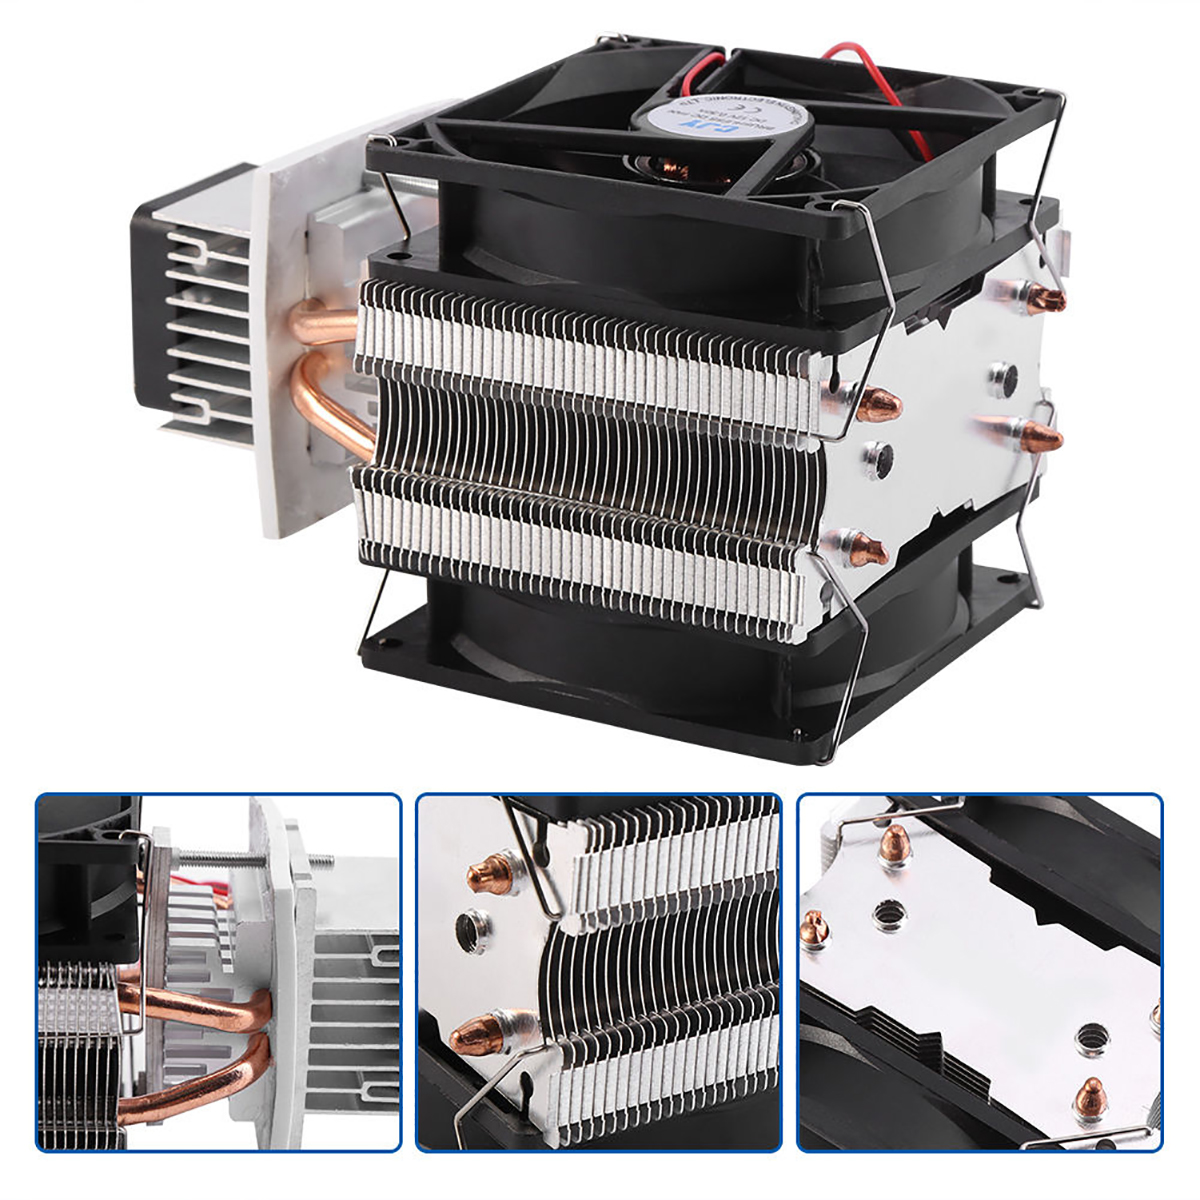 12V 6A Thermoelectric Peltier Semiconductor Cooler Refrigeration Cooling System Kit Cooler Fan For Air Cooling Mayitr 5 pcs qdzh35g r134a 12v cooling compressor for marine refrigeration unit